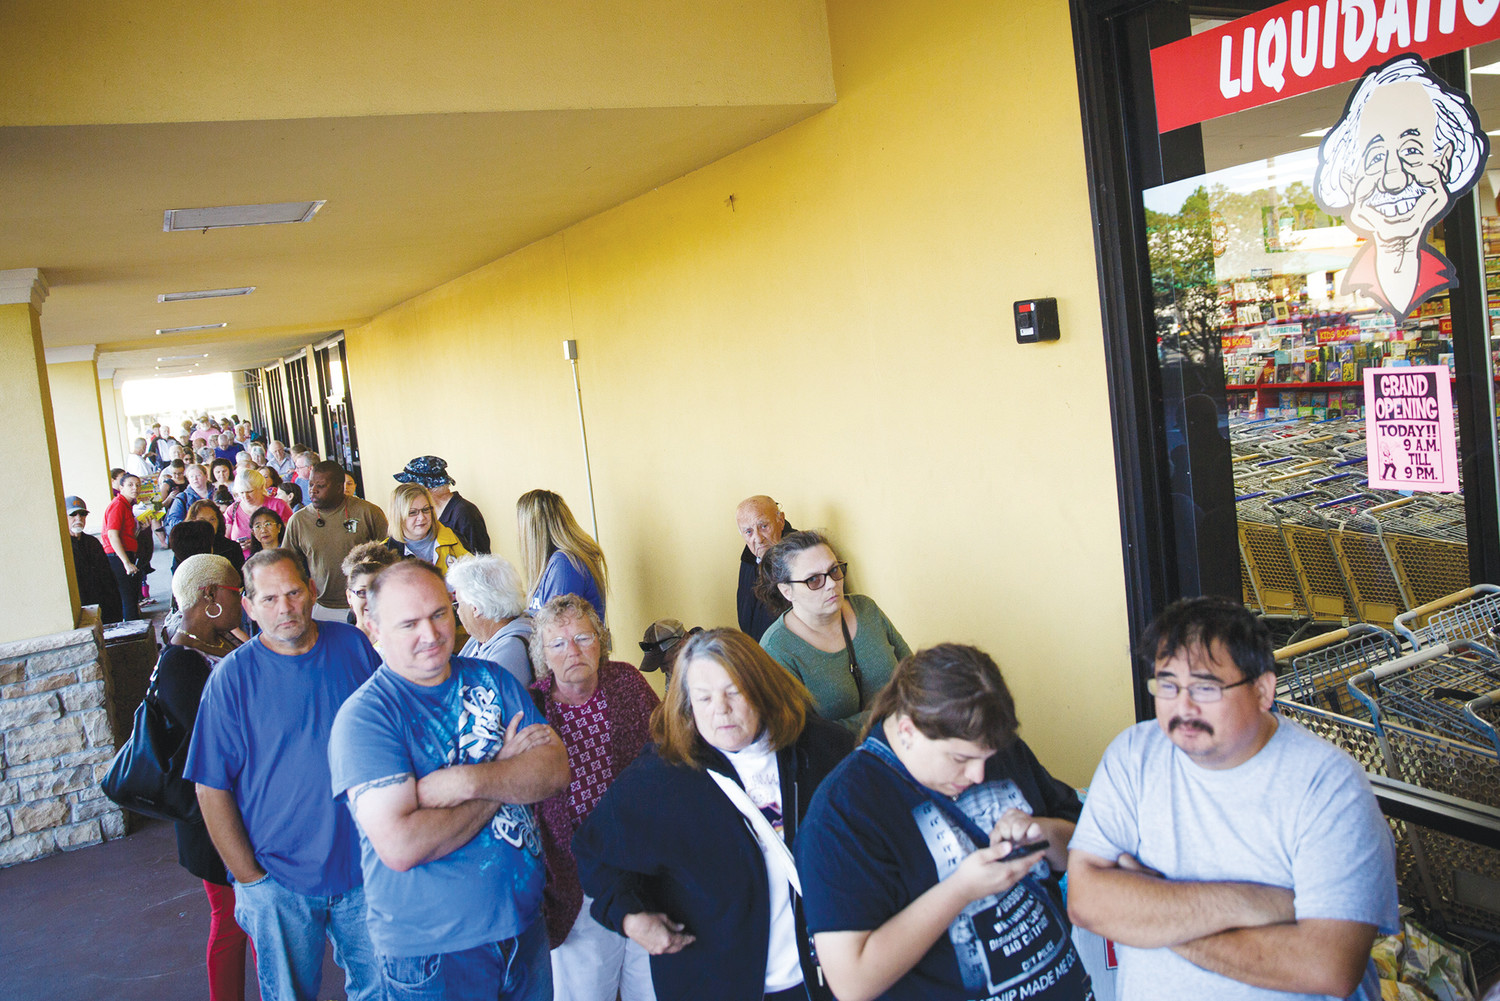 A line wrapped around the shopping center Wednesday morning starting at the front door of Ollie's Bargain Outlet which was holding a grand opening event starting at 9 that morning.